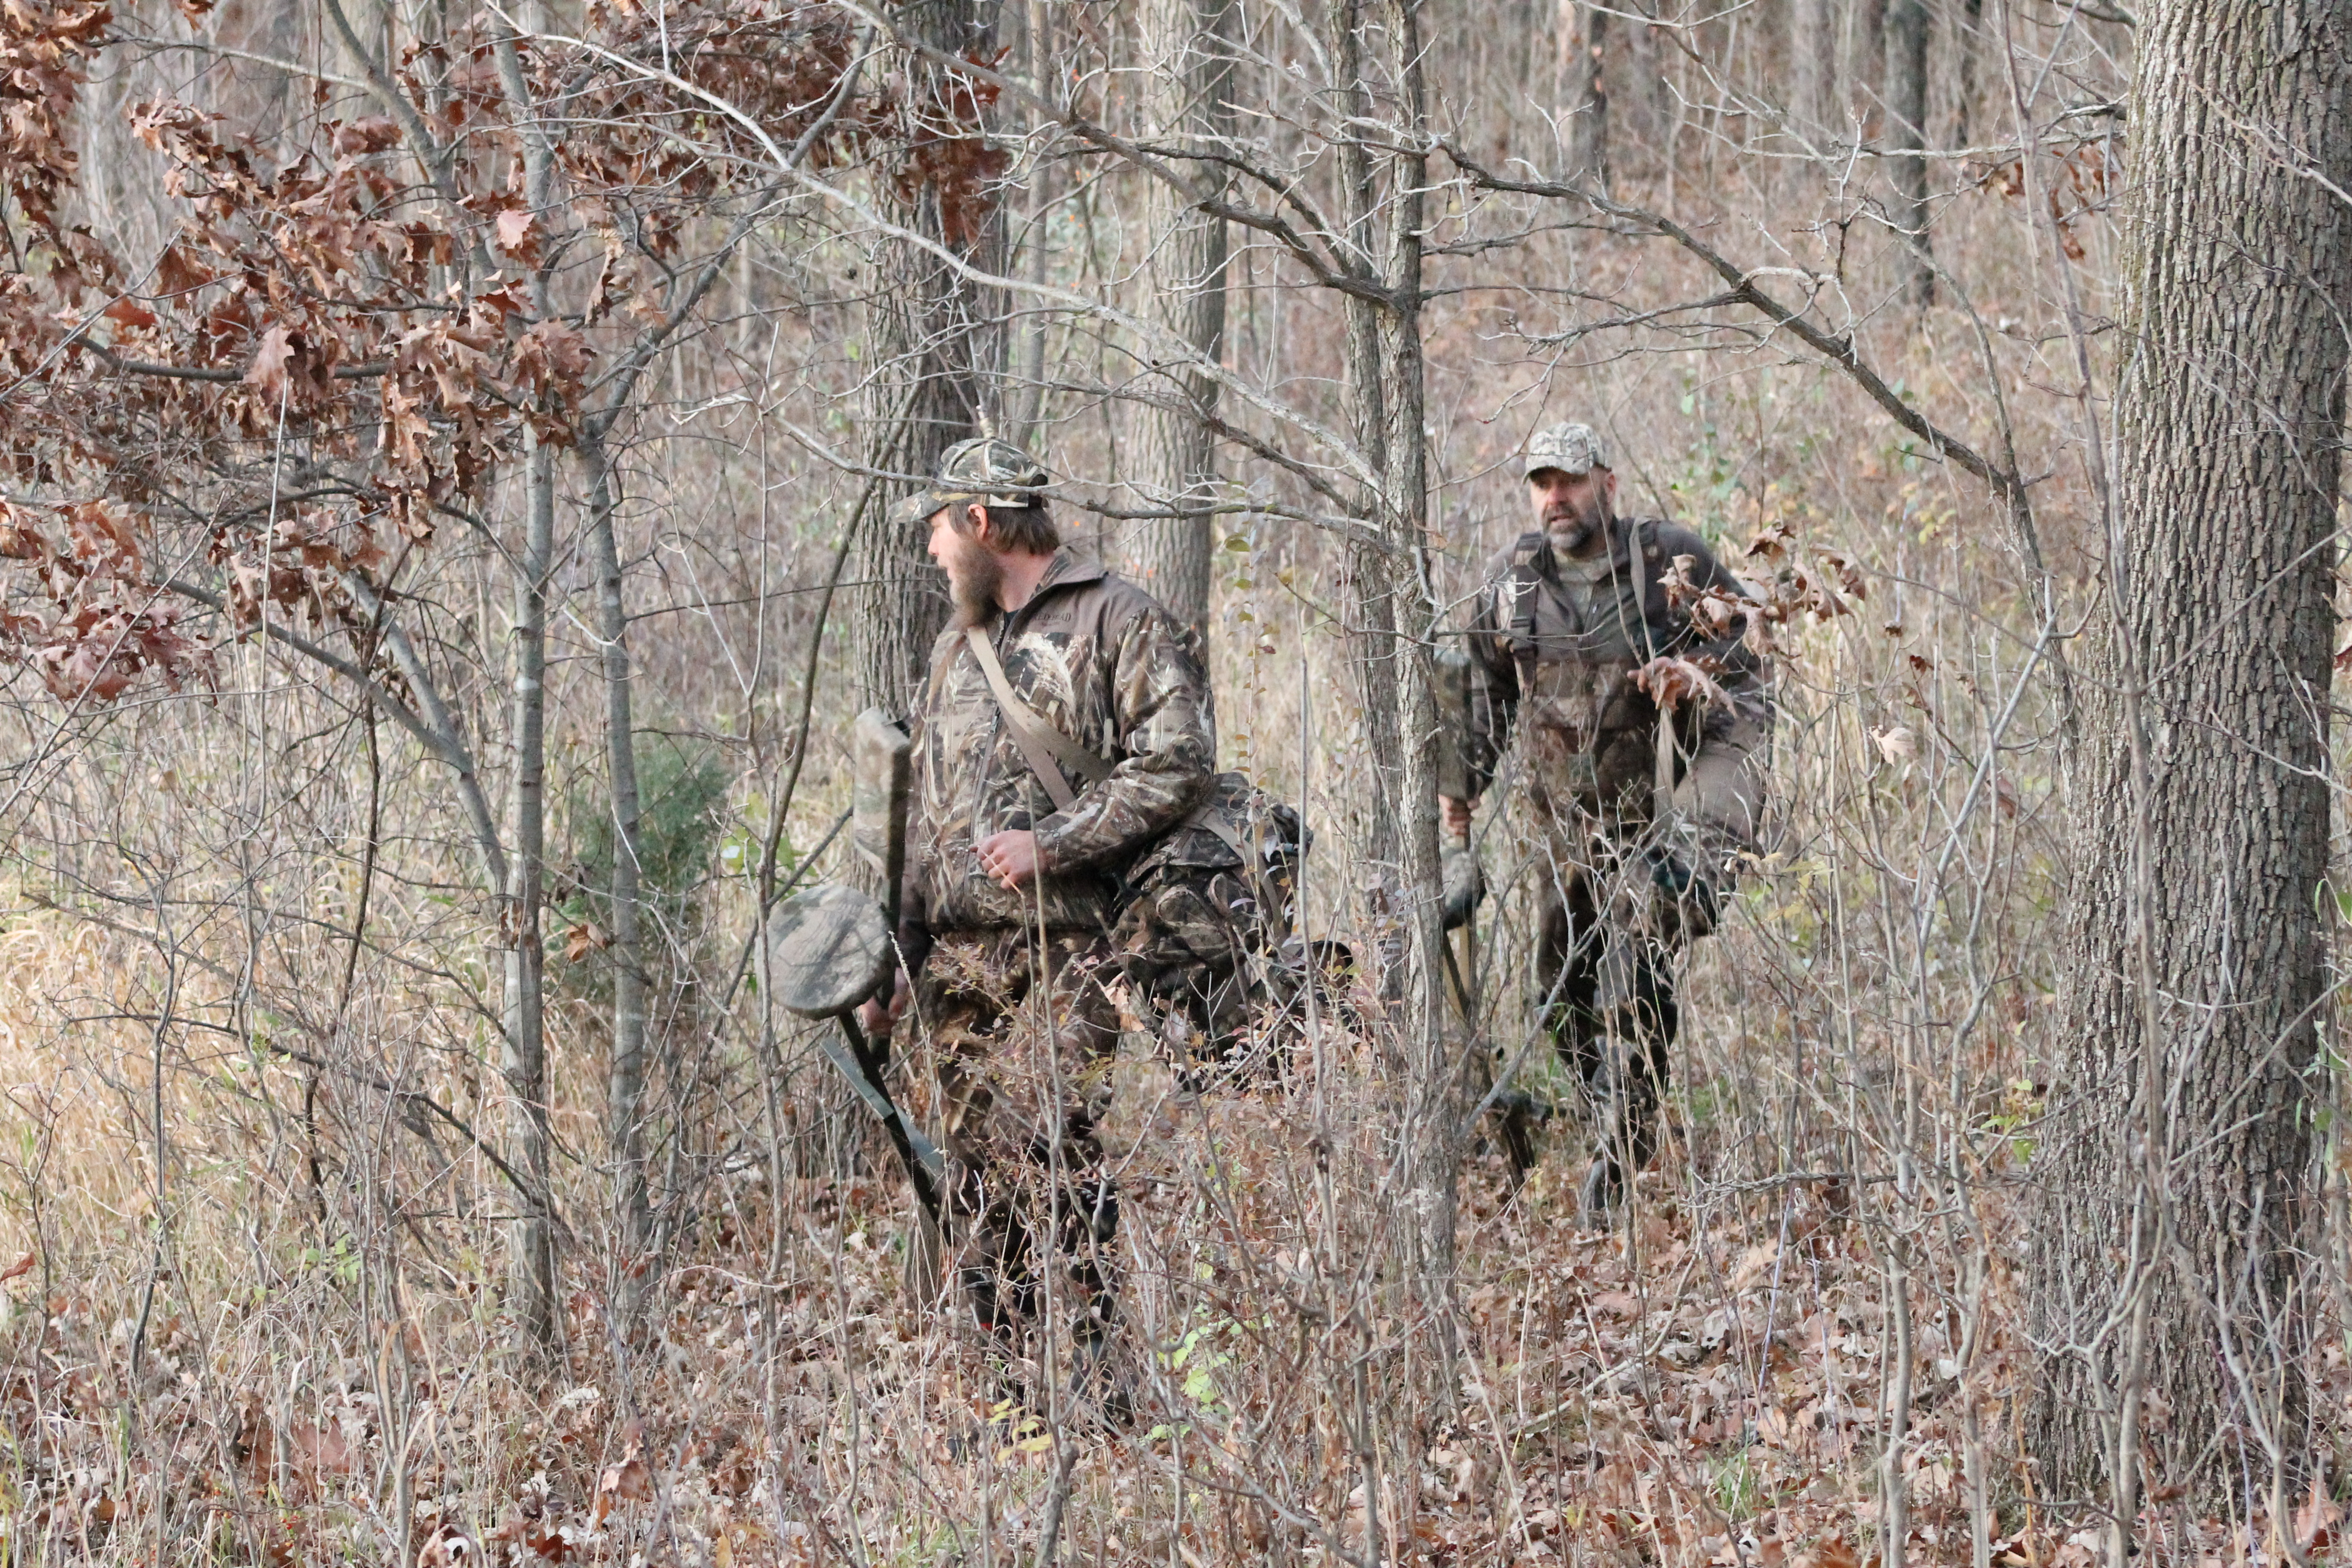 Check Out the Hunting Chairs… – Just Duckin